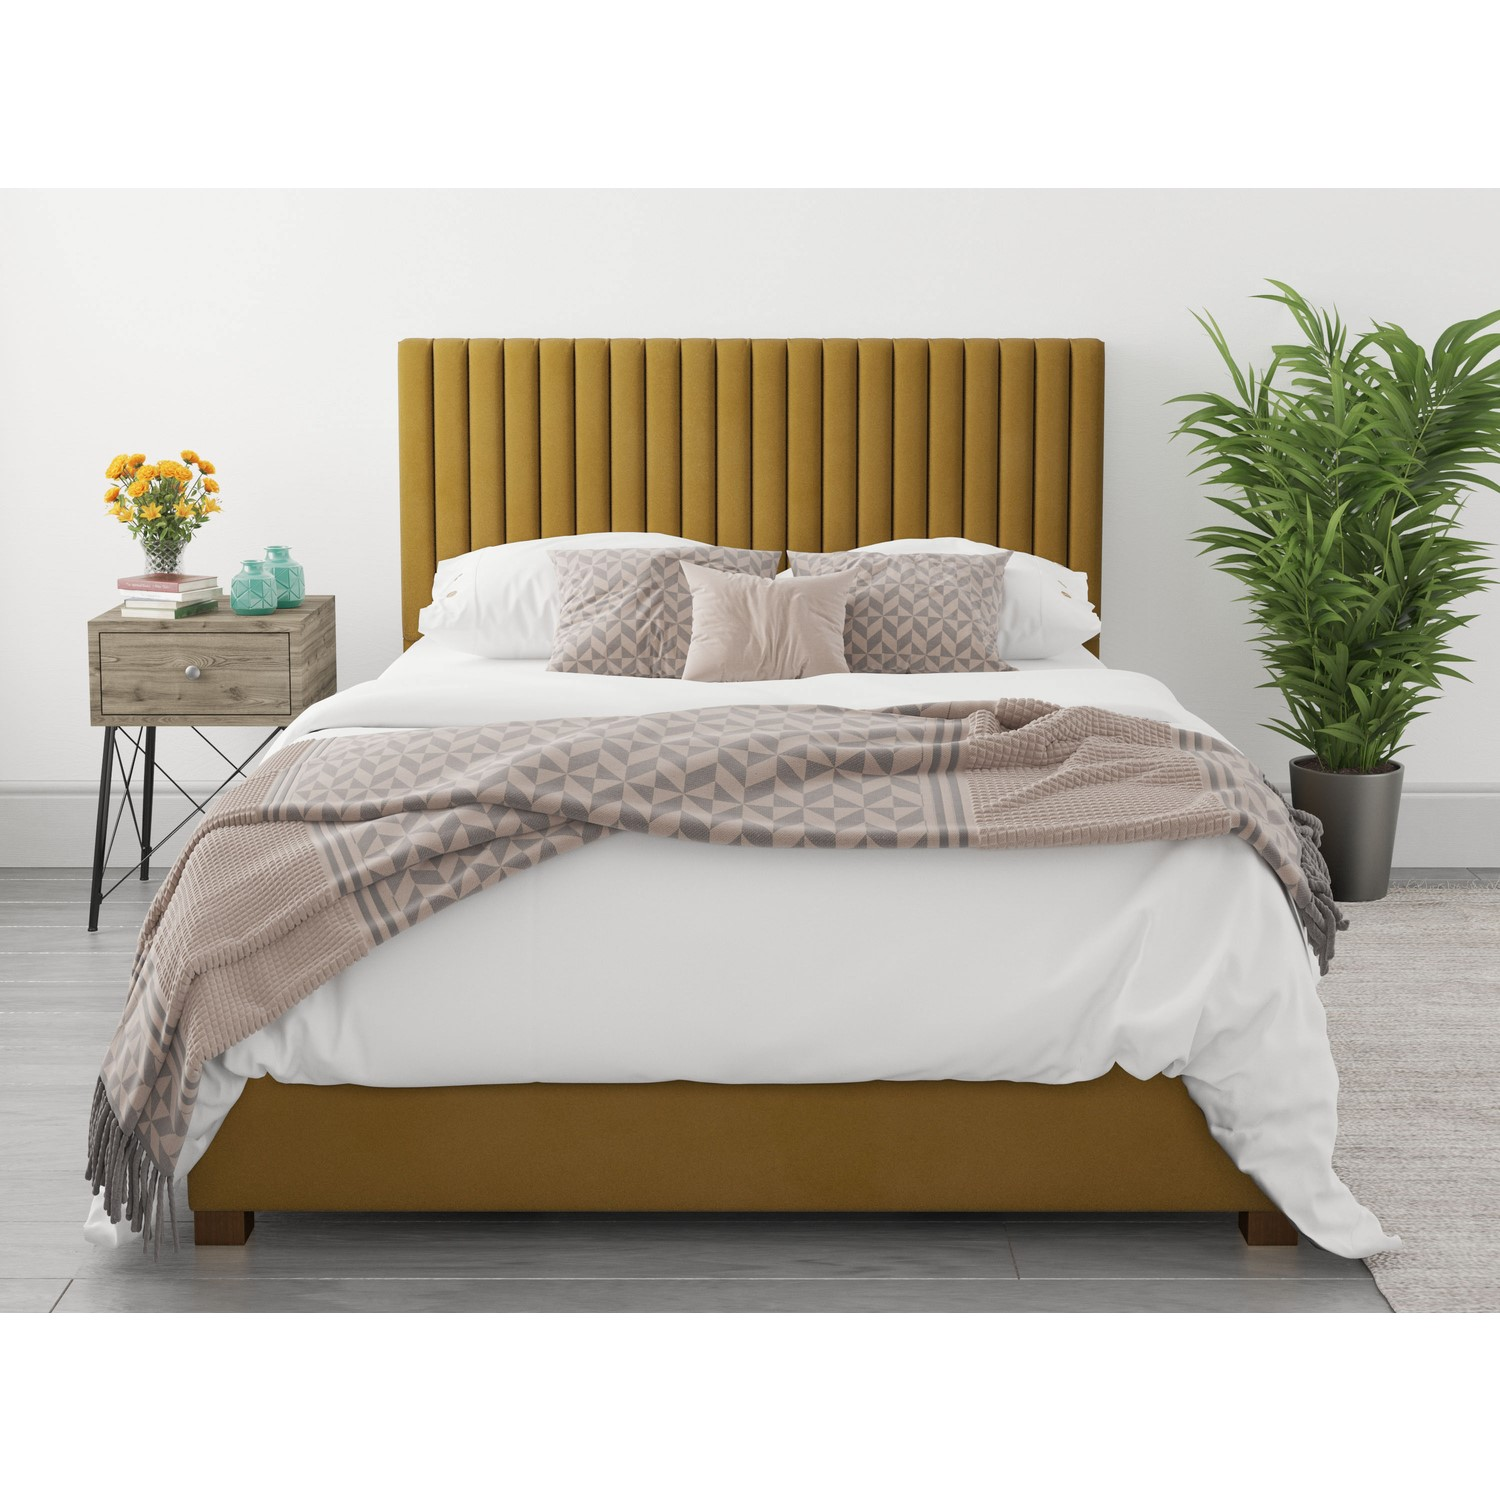 Stupendous Piccadilly King Size Ottoman Bed In Deep Mustard Velvet Pabps2019 Chair Design Images Pabps2019Com